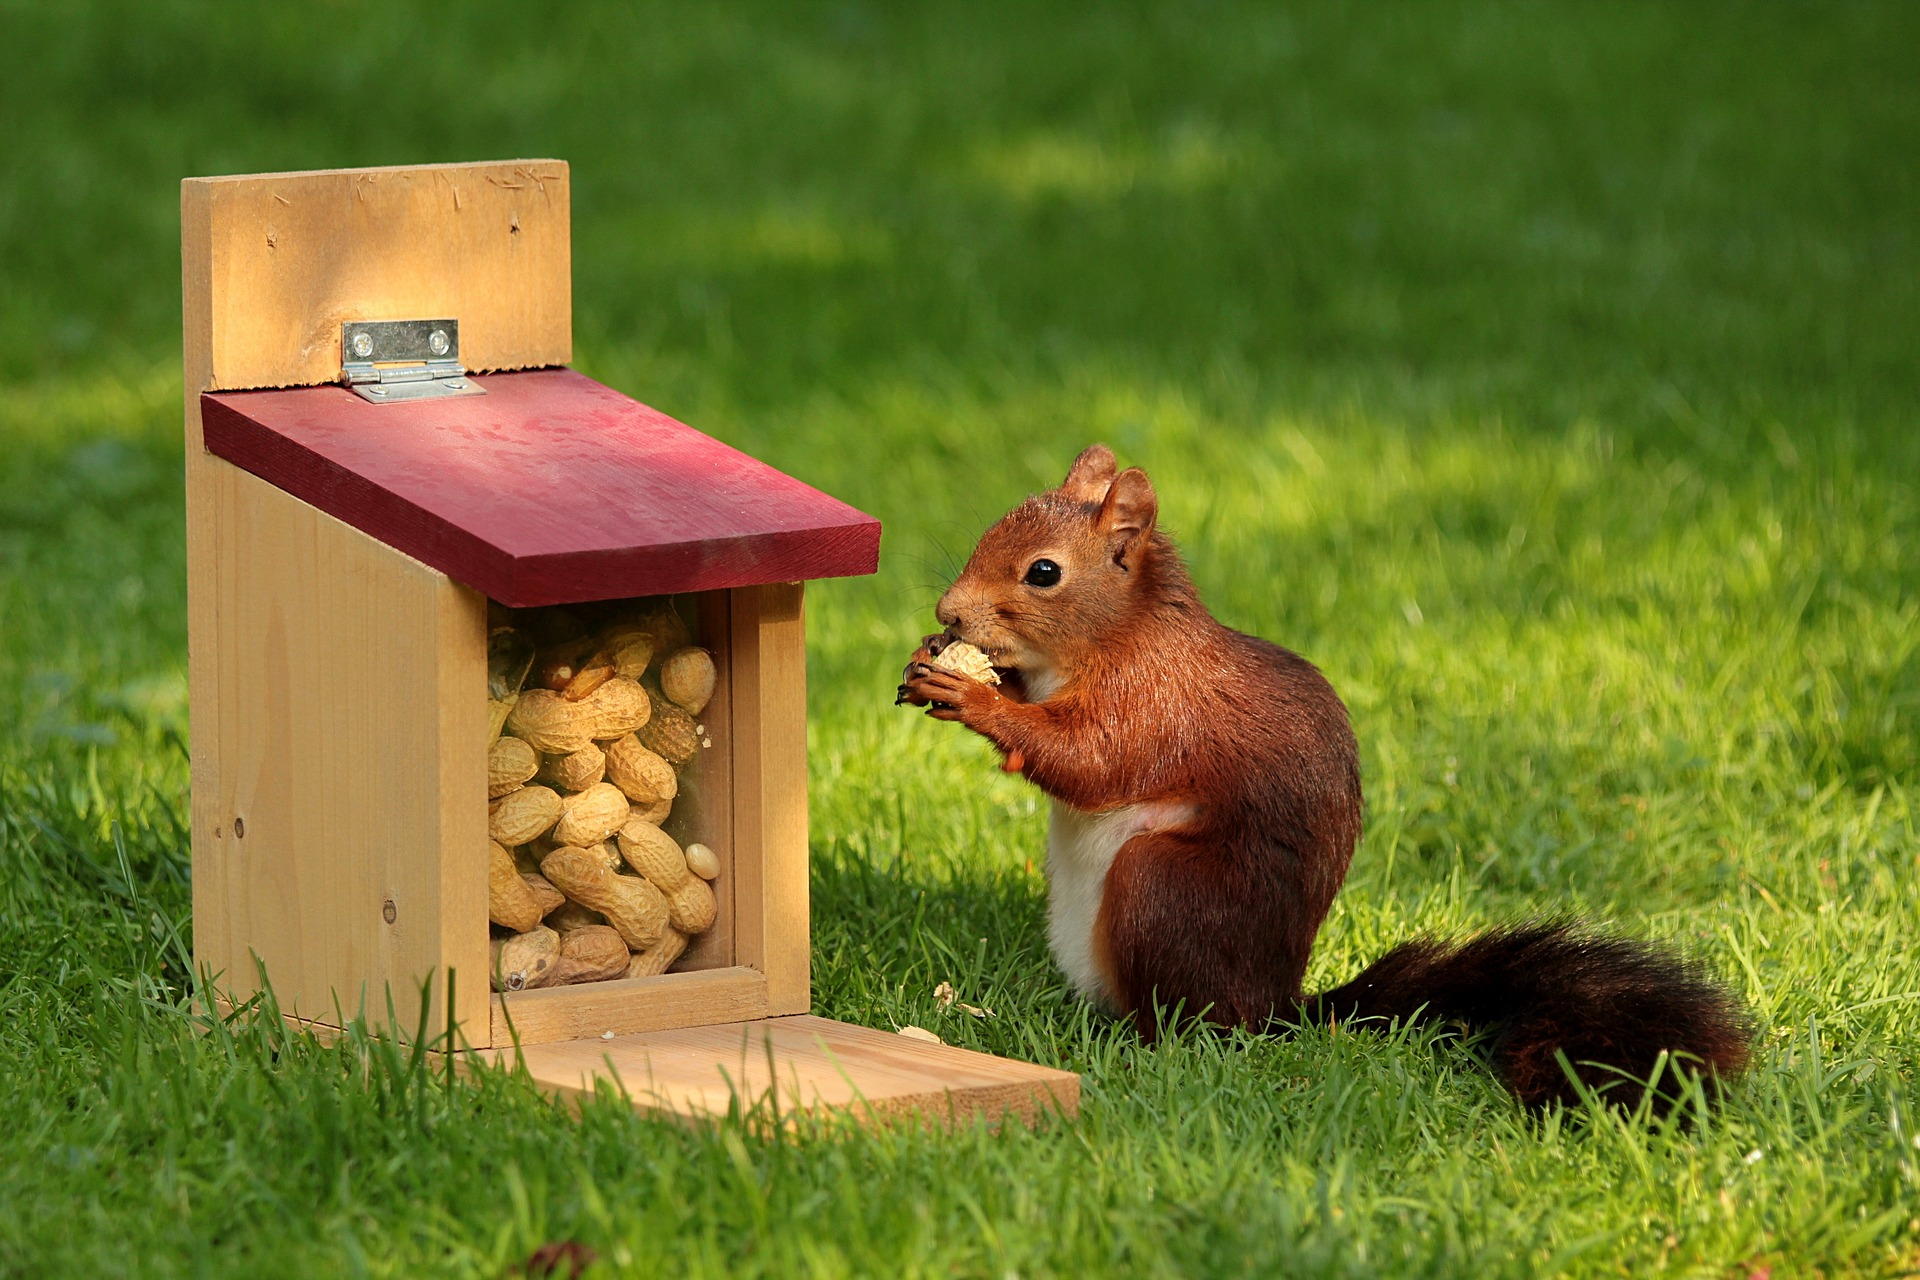 organizing the squirrels